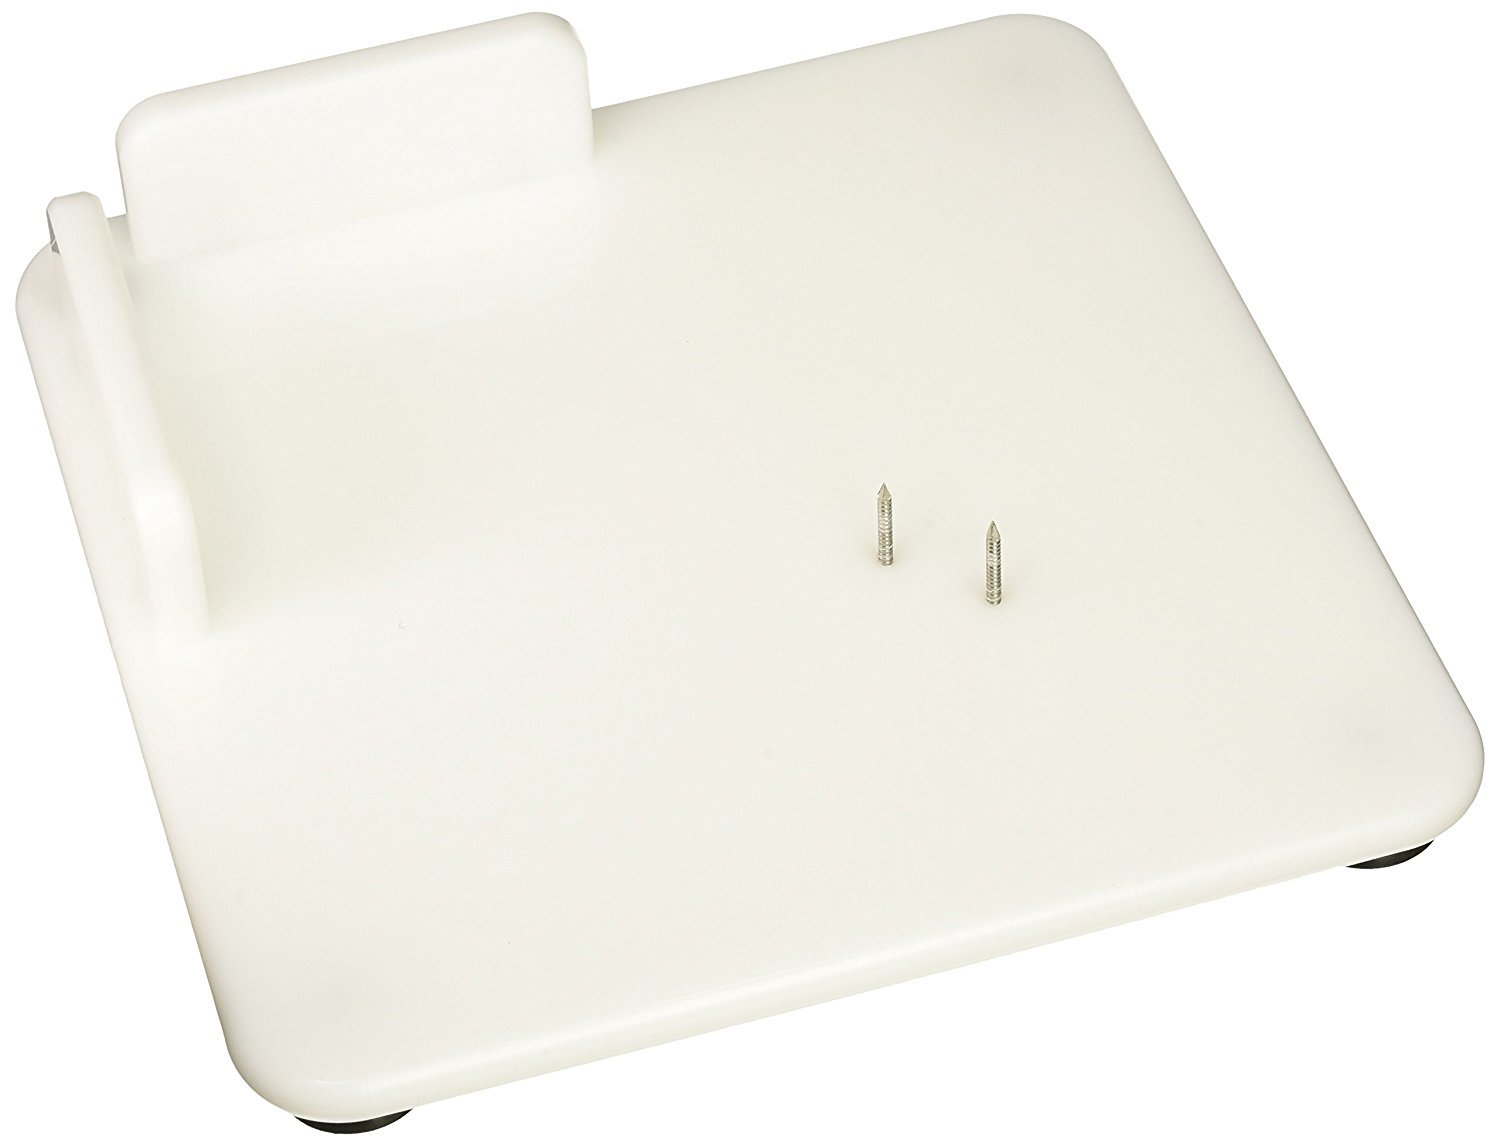 Physical Therapy Aids 081288059 Hi-D Paring Board, 8-1/2'' x 8-1/2''